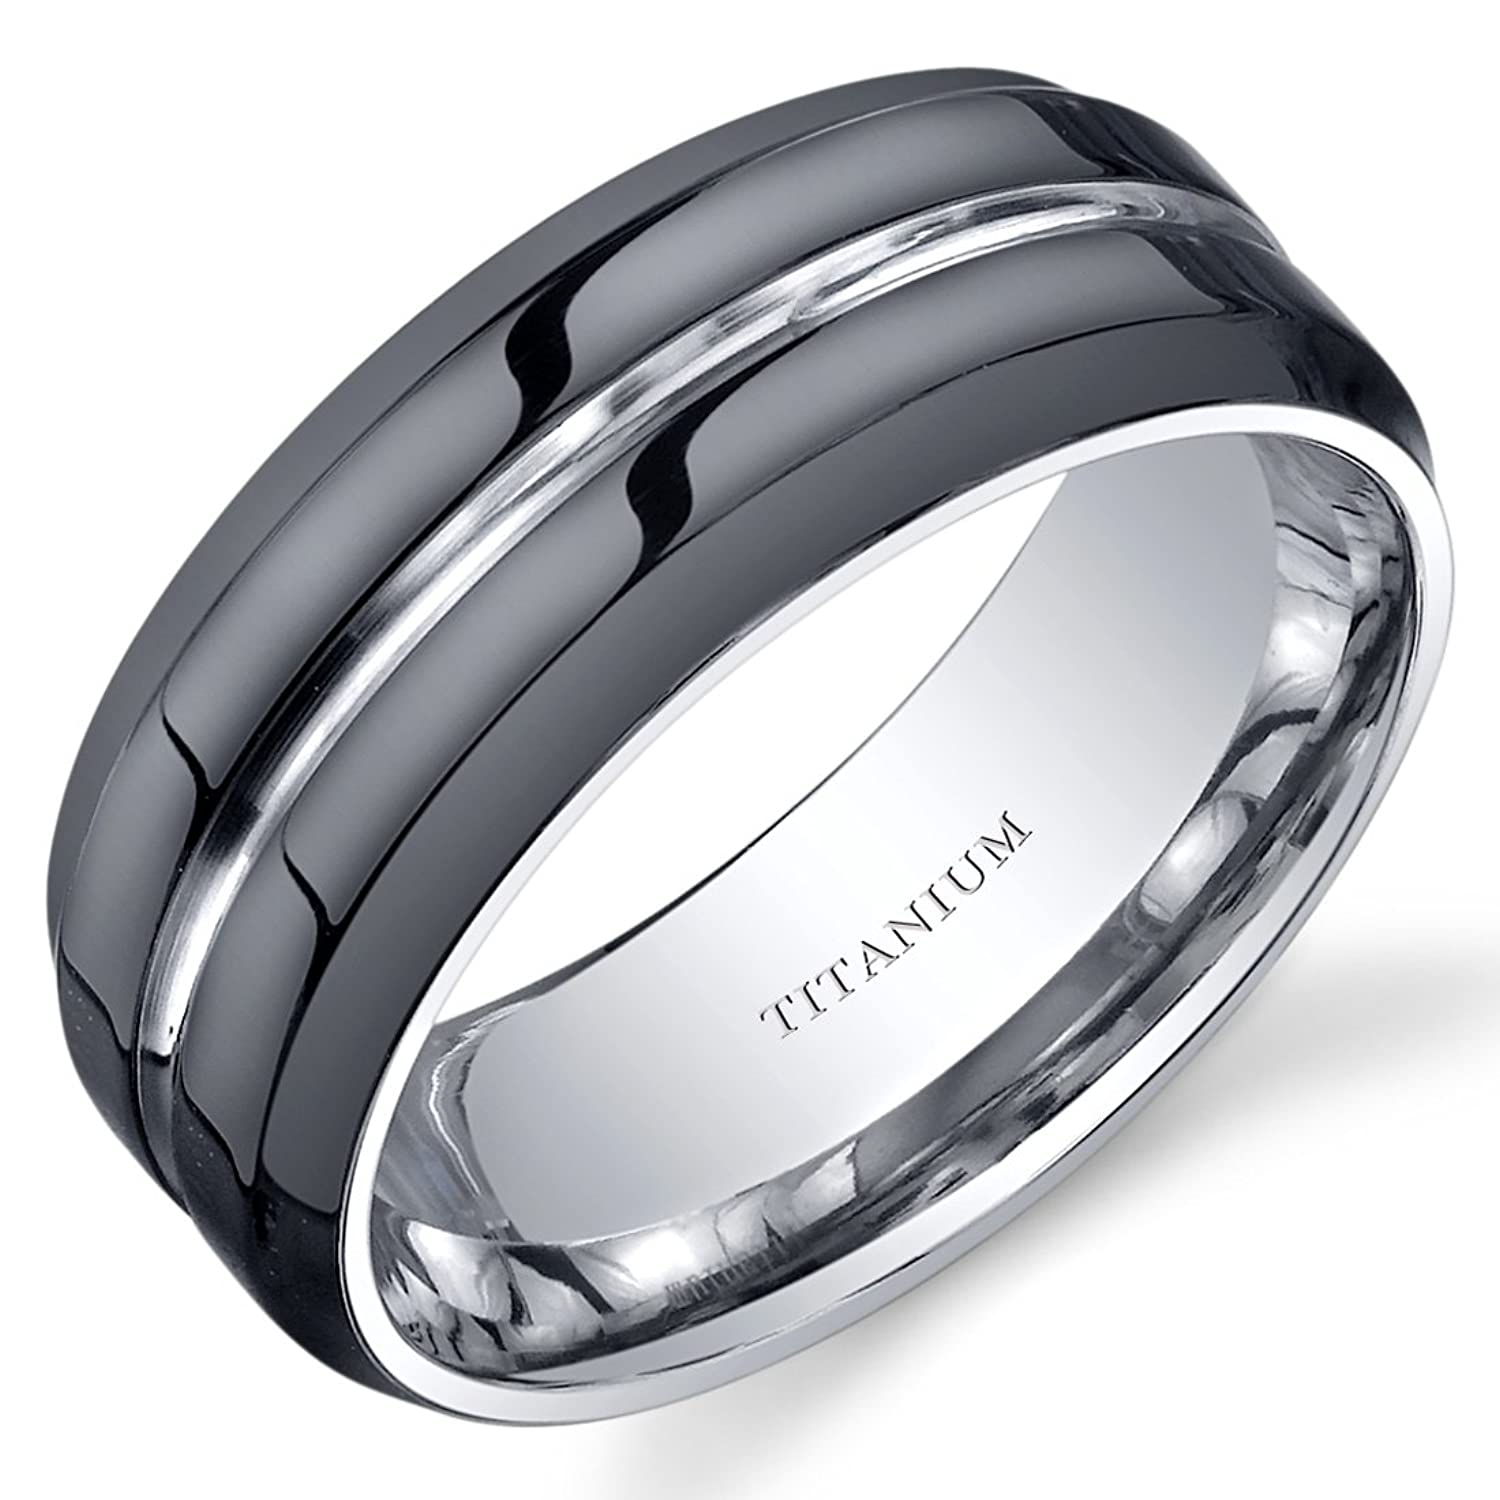 and gold mens bands unisex besttohave band wedding titanium jewellery tone image classic ring rings